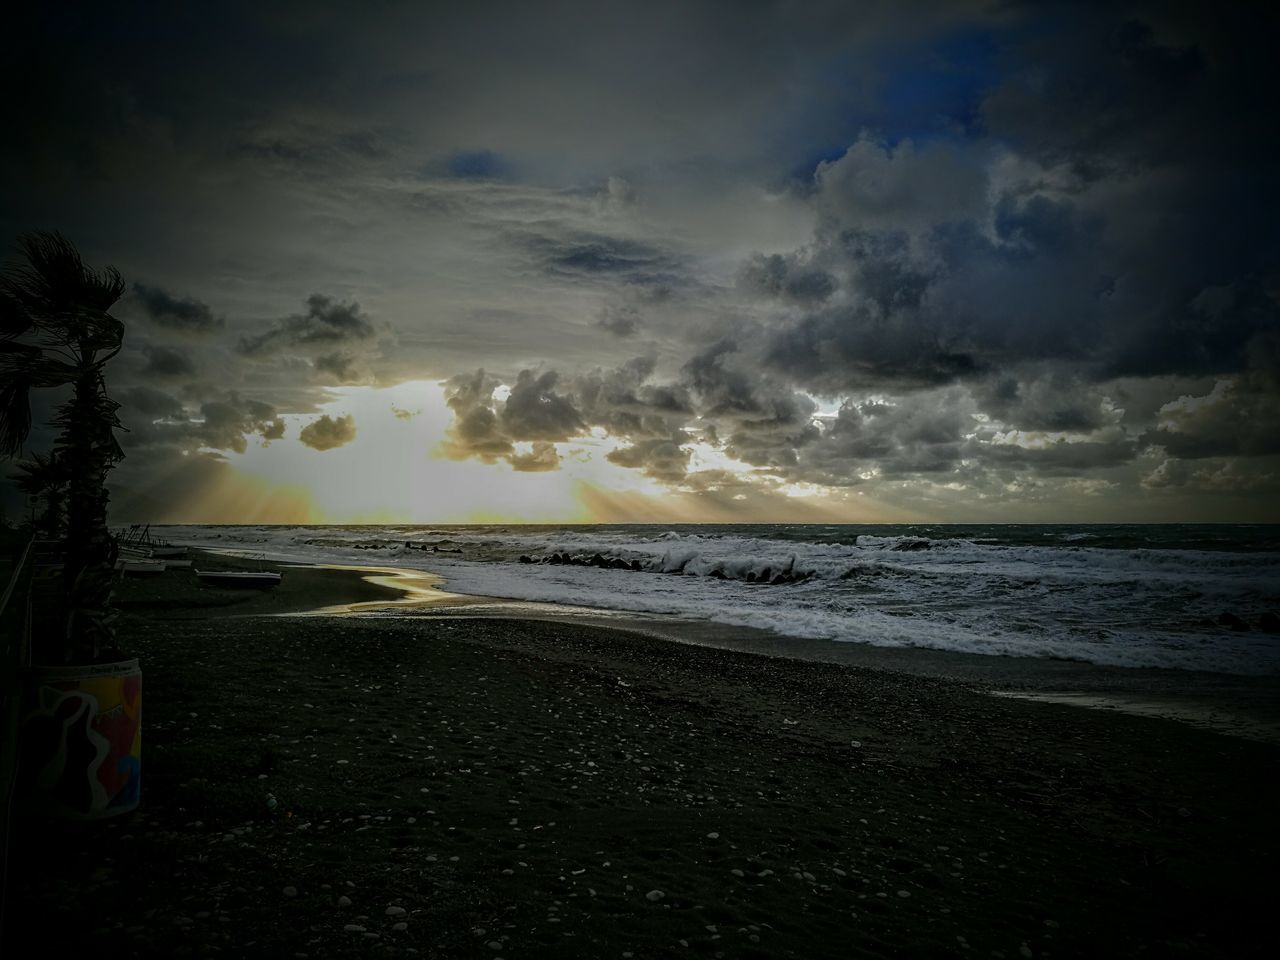 sea, beauty in nature, beach, sky, nature, scenics, horizon over water, water, cloud - sky, tranquil scene, tranquility, sunset, no people, outdoors, wave, storm cloud, power in nature, day